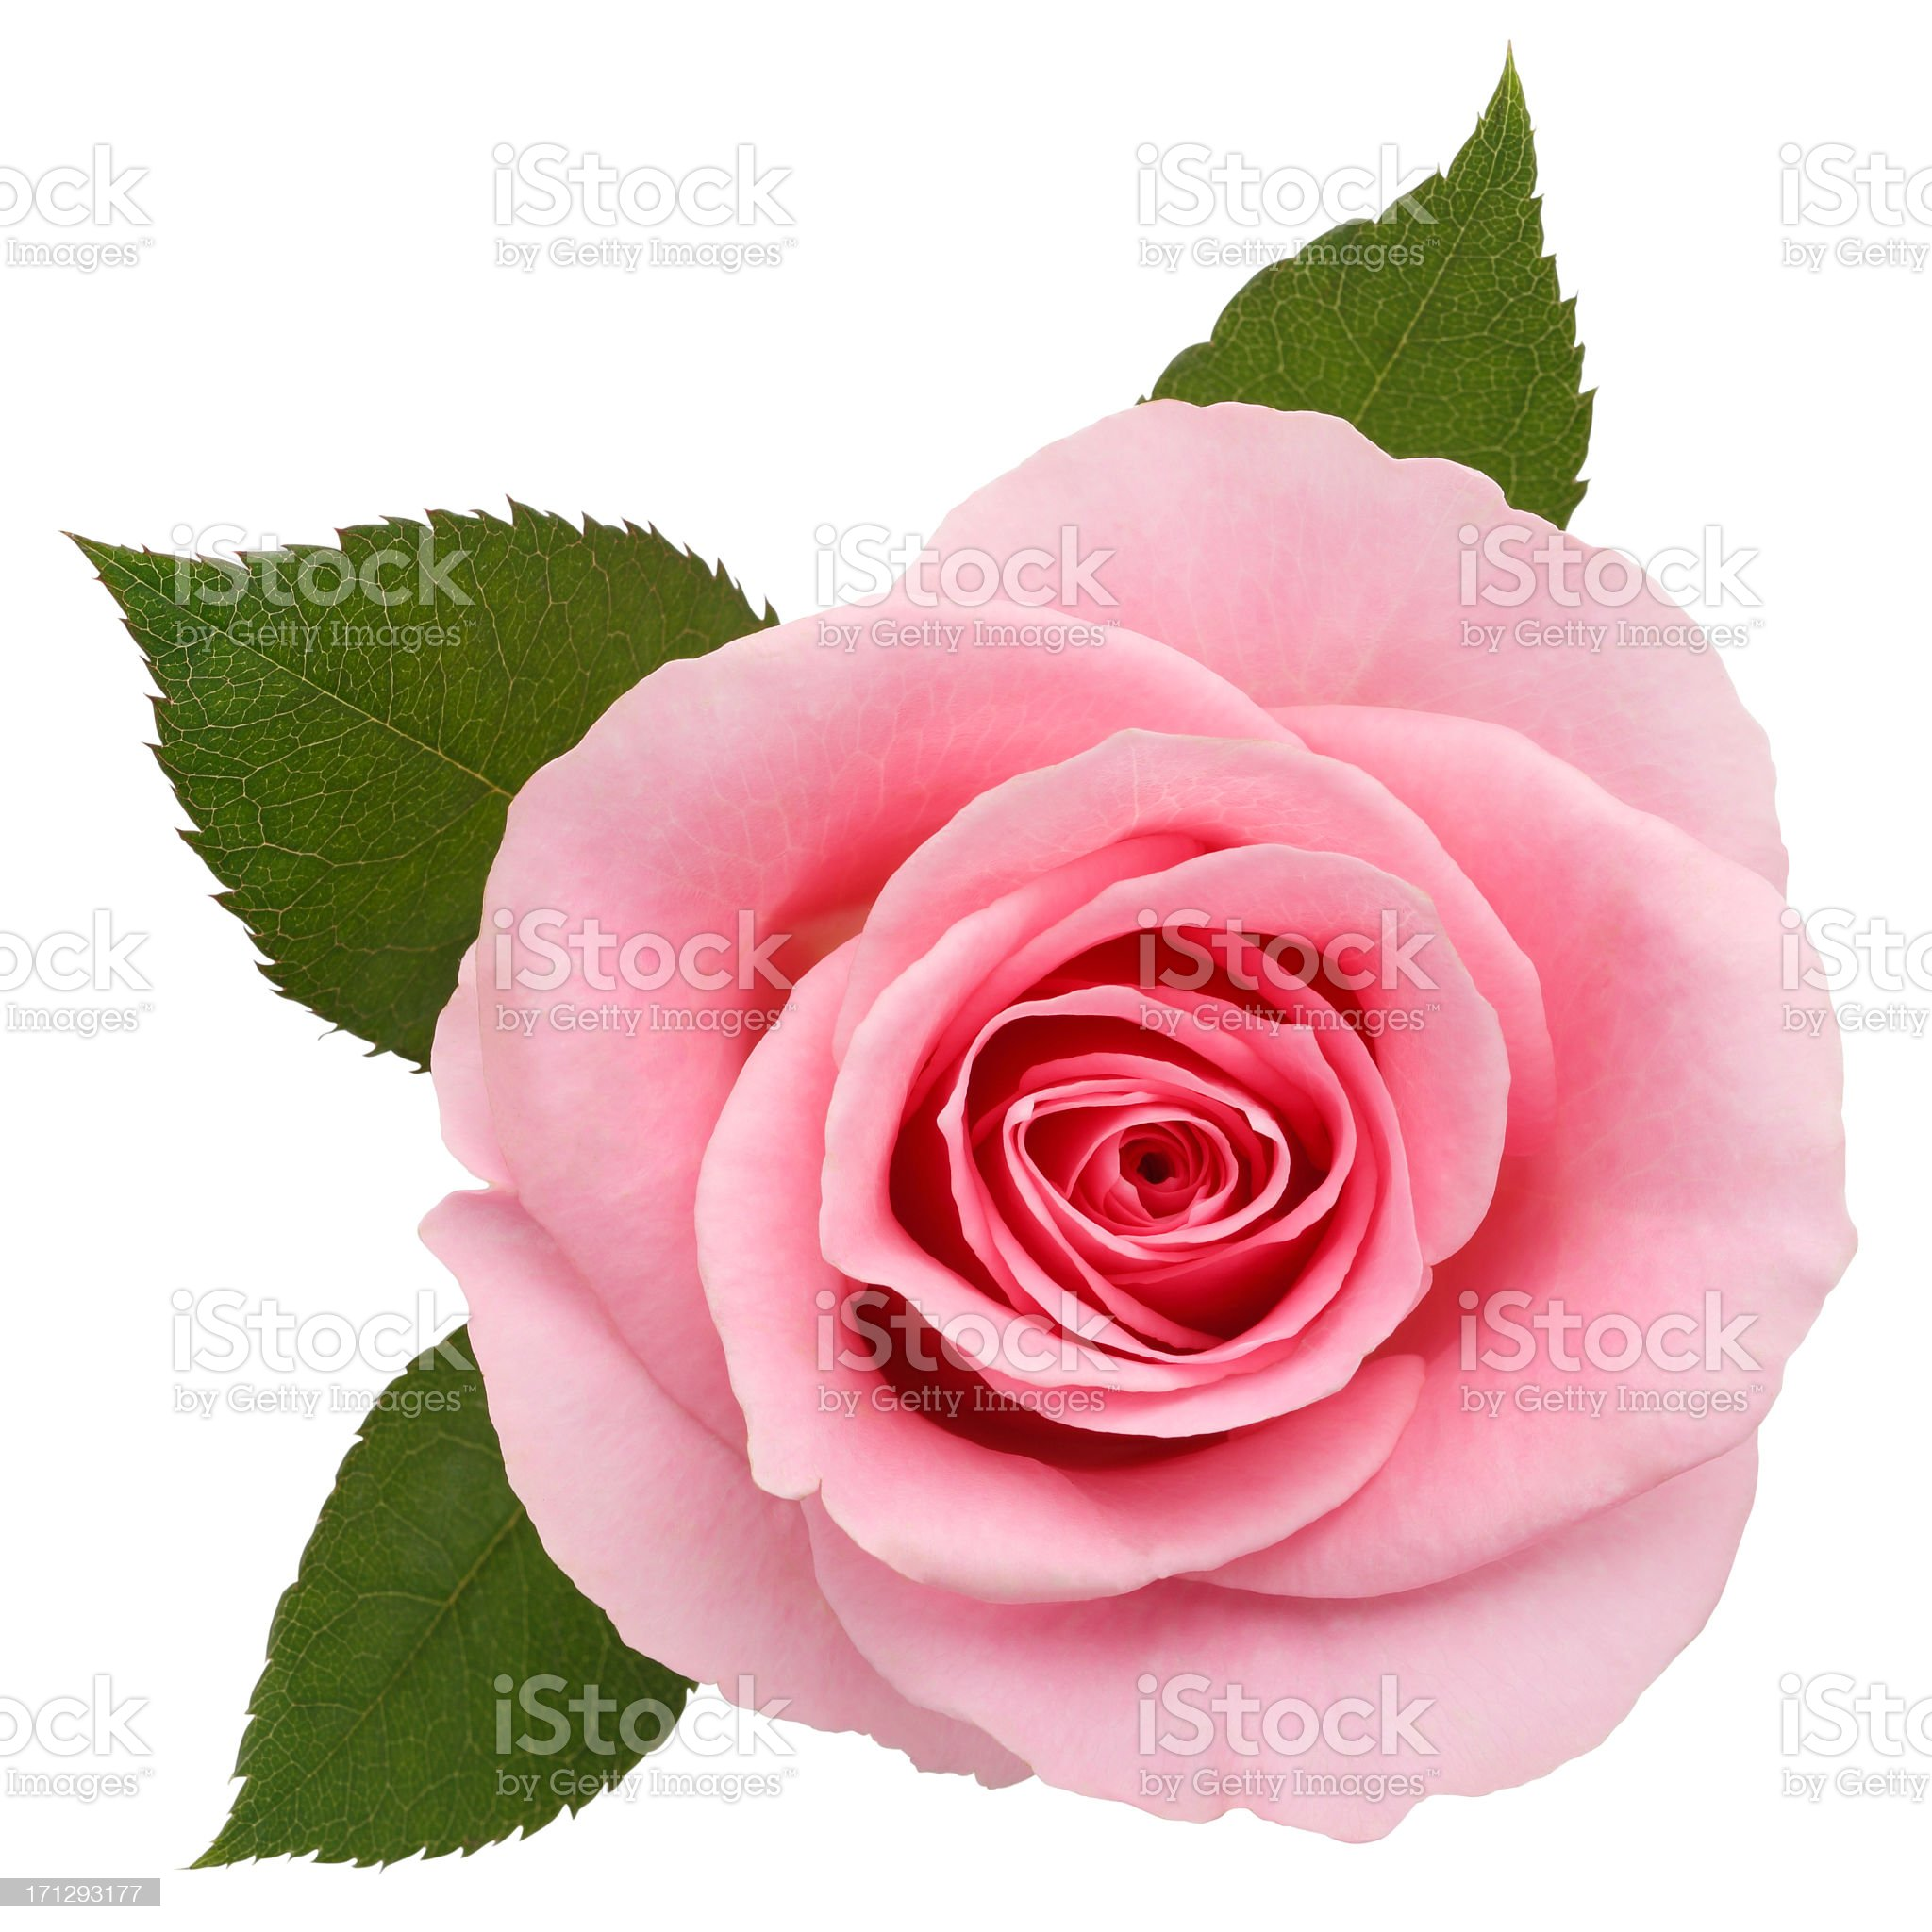 One pink rose on a white backdrop royalty-free stock photo